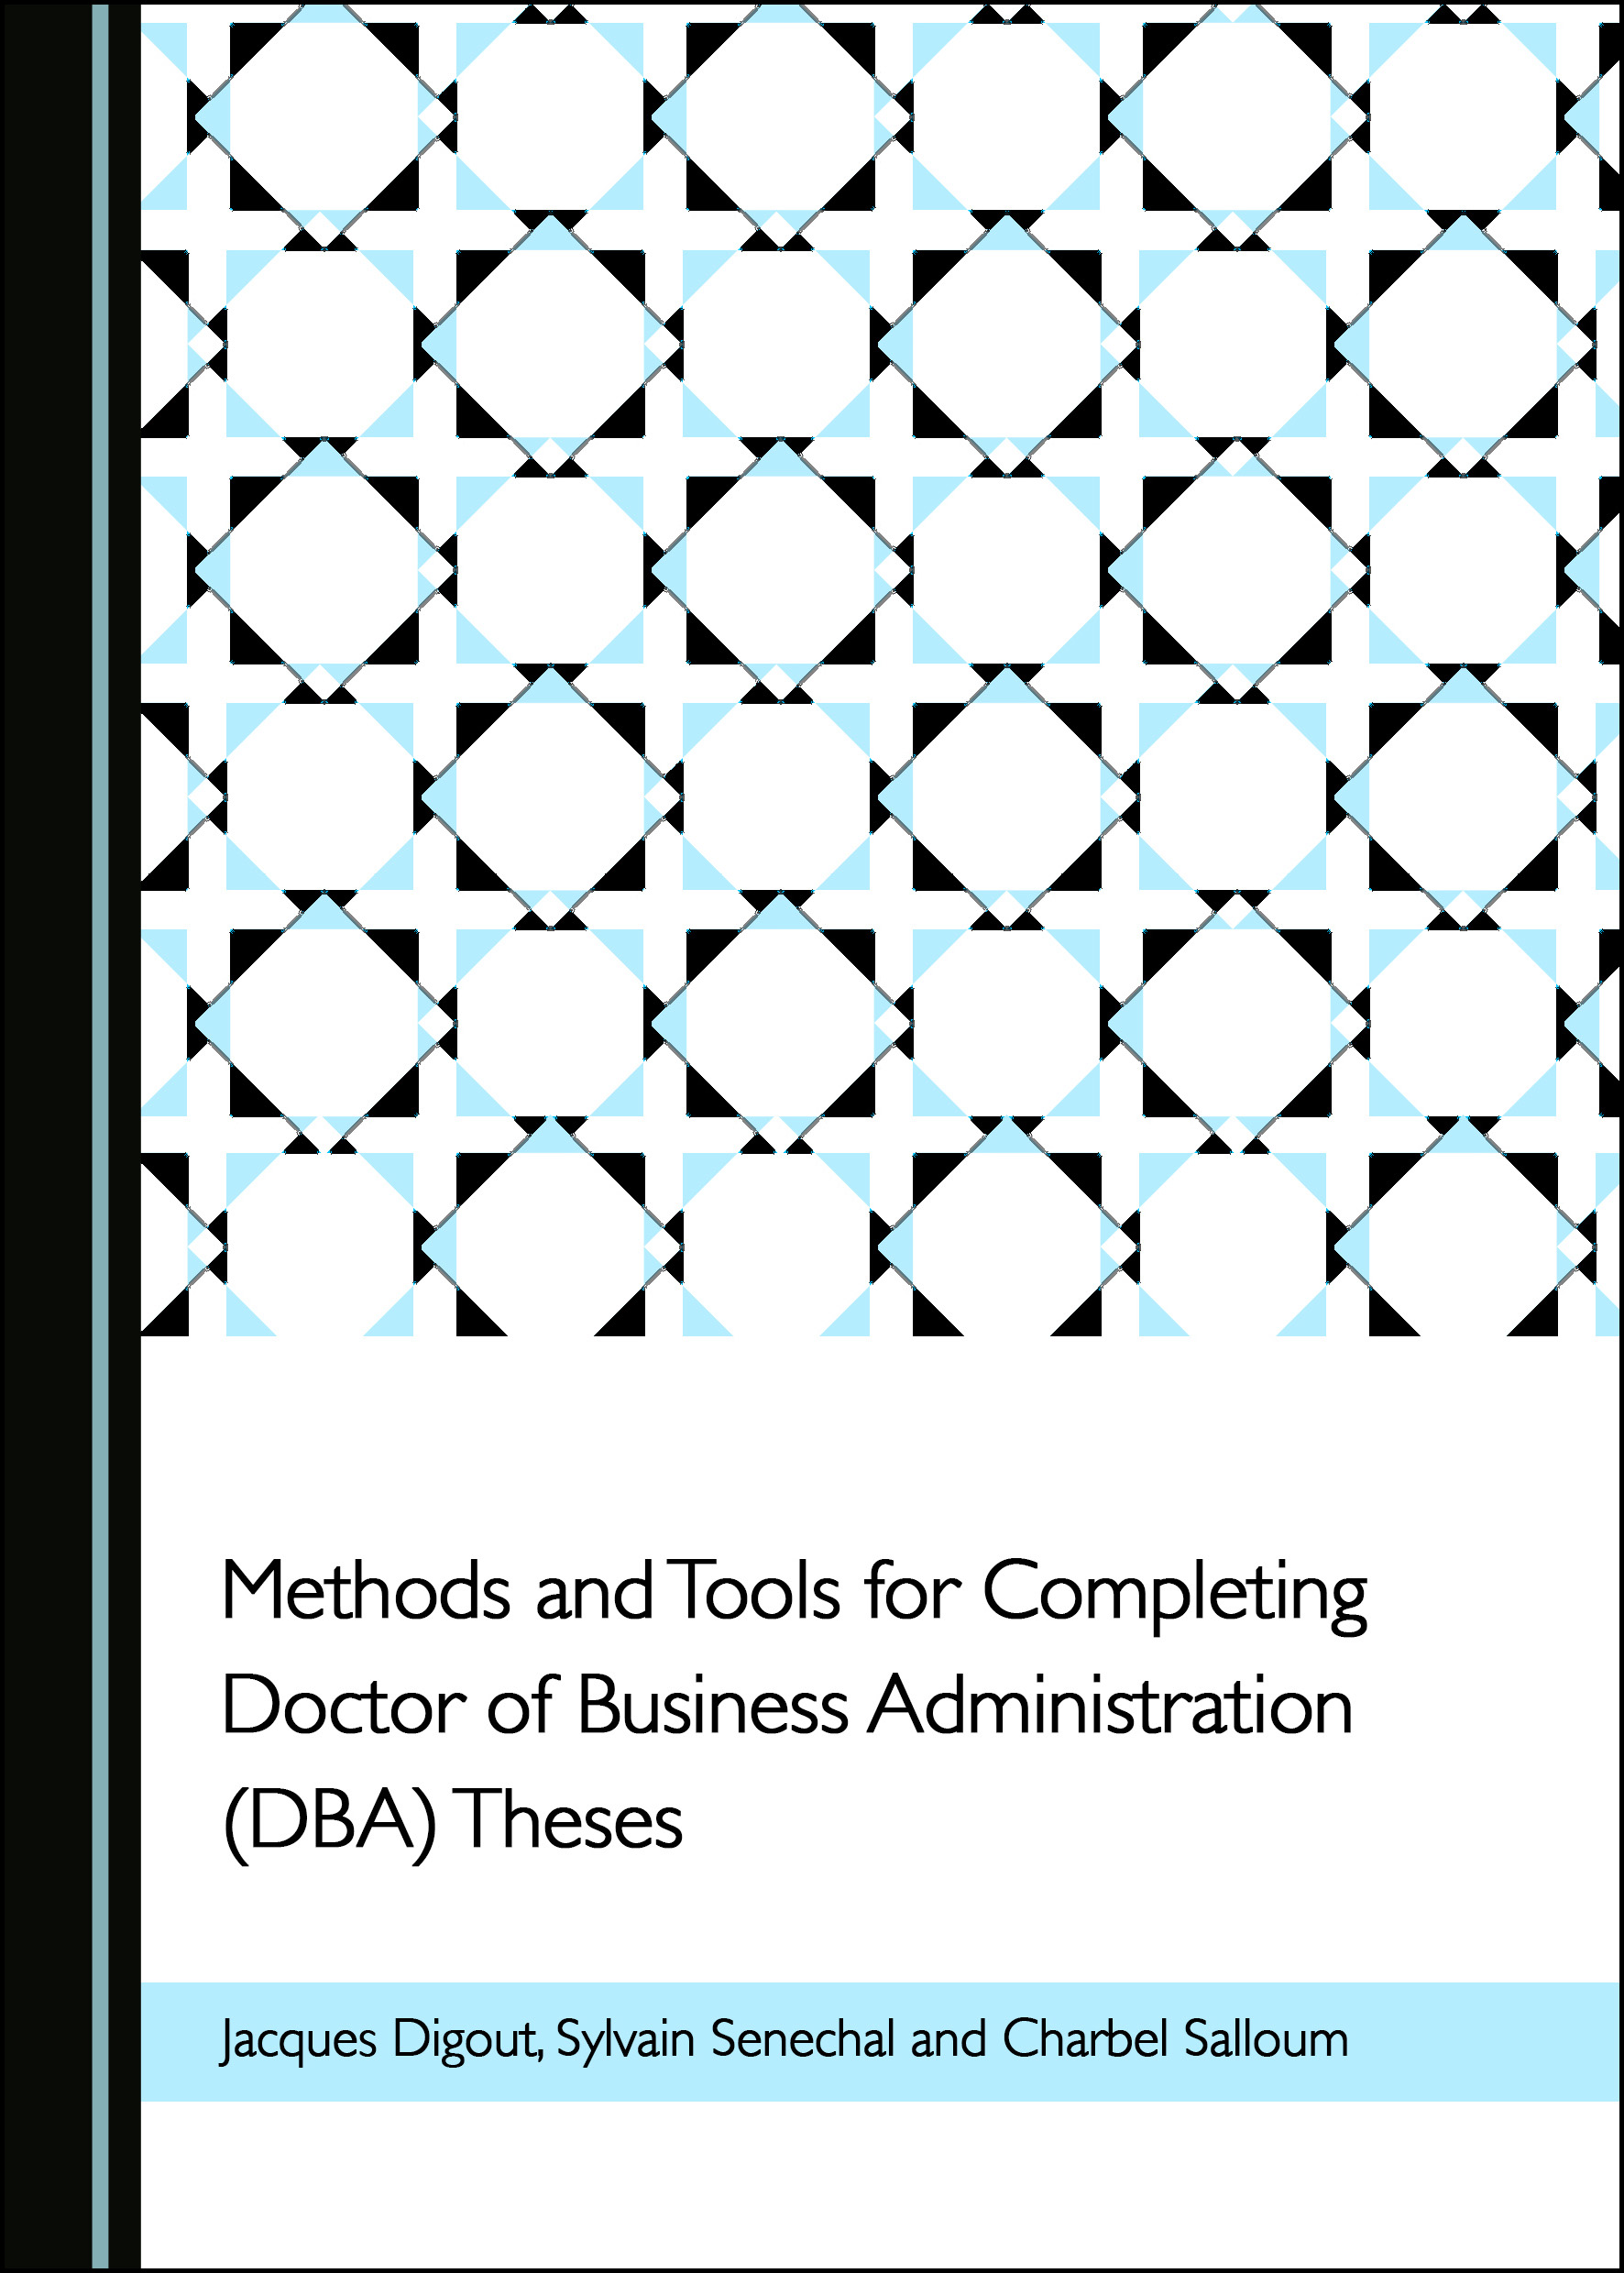 Methods and Tools for Completing Doctor of Business Administration (DBA) Theses